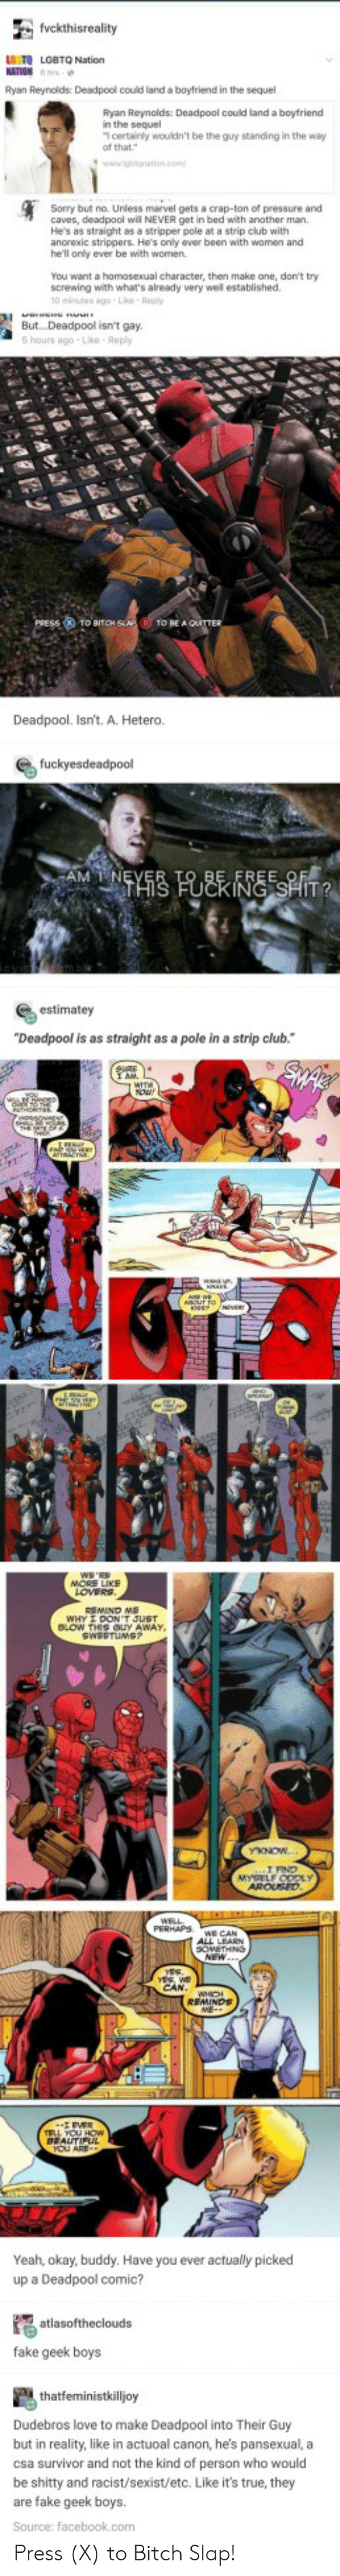 """Screwing: LS TO LGBTQ Nation  Ryan Reynolds Deadpool could land a boyfriend in the sequel  Ryan Reynolds: Deadpool could land a boytriend  n the sequel  certainly wouldn't be the guy standing in the way  Sorry but no. Unless marvel gets a crap-ton of pressure and  caves, deadpool will NEVER get in bed with anather man.  He's as straight as a stripper pole at a strip club with  ancrexic strippers. He's only ever been with women and  he'll only ever be with women  You want a homosexual character, then make one, don't try  screwing with what's abready very well established  0 minutes ago-Le Reply  Bu...Deadpool isn't gay  5 hours ago-Lke Reply  Deadpool. Isn't. A. Hetero.  estimatey  """"Deadpool is as straight as a pole in a strip club.  Yeah, okay, buddy. Have you ever actually picked  up a Deadpool comic?  fake geek boys  Dudebros love to make Deadpool into Their Guy  but in reality, like in actuoal canon, he's pansexual, a  csa survivor and not the kind of person who would  be shitty and racist/sexist/etc. Like it's true, they  are fake geek boys.  Source: facebook.com Press (X) to Bitch Slap!"""